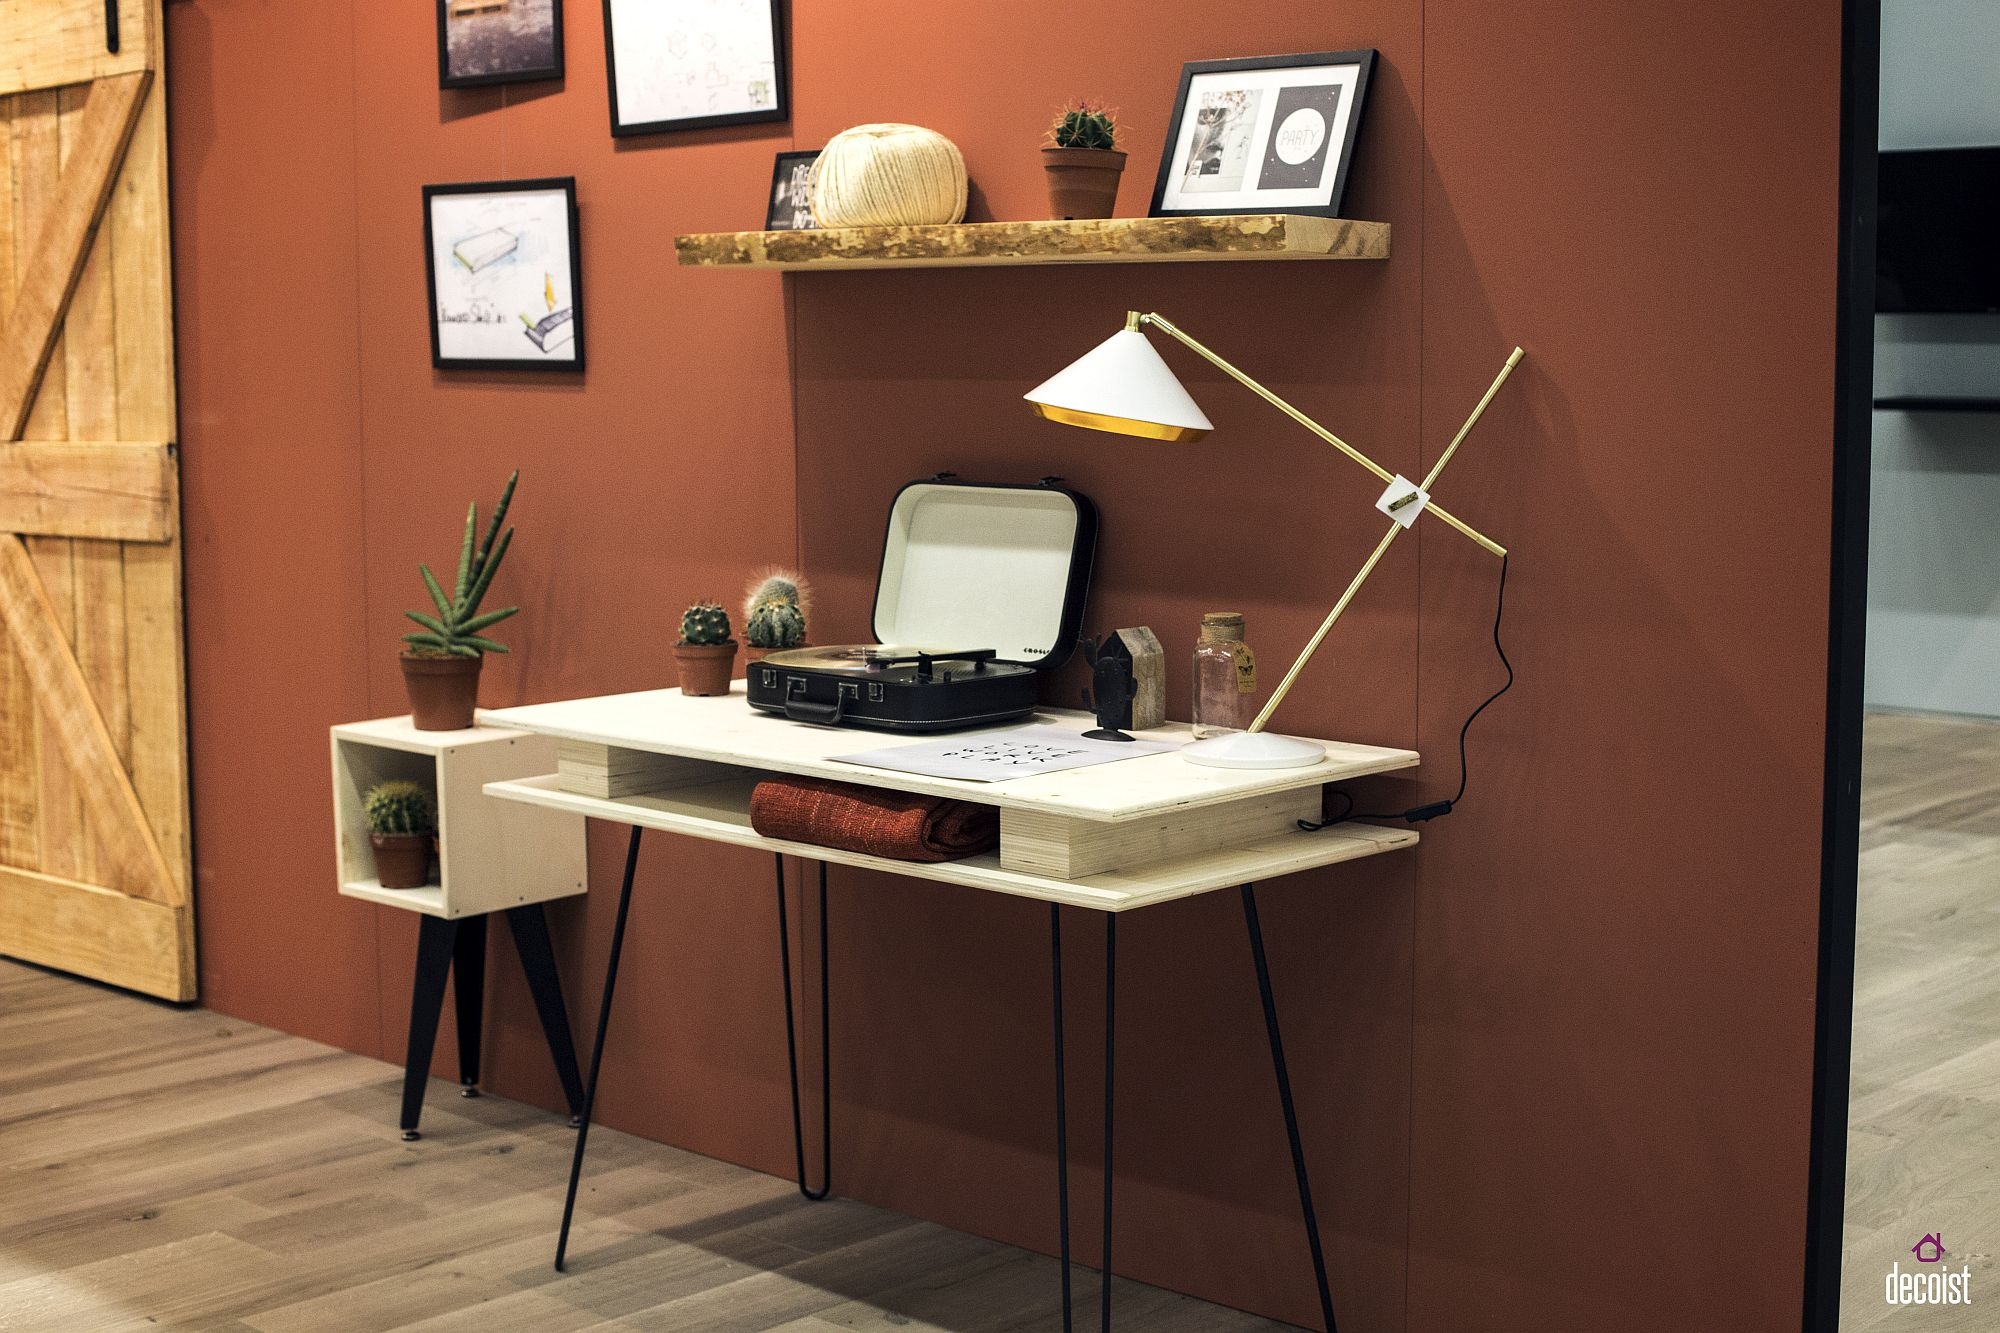 Simple wooden floating shelf for the space-savvy home workstation